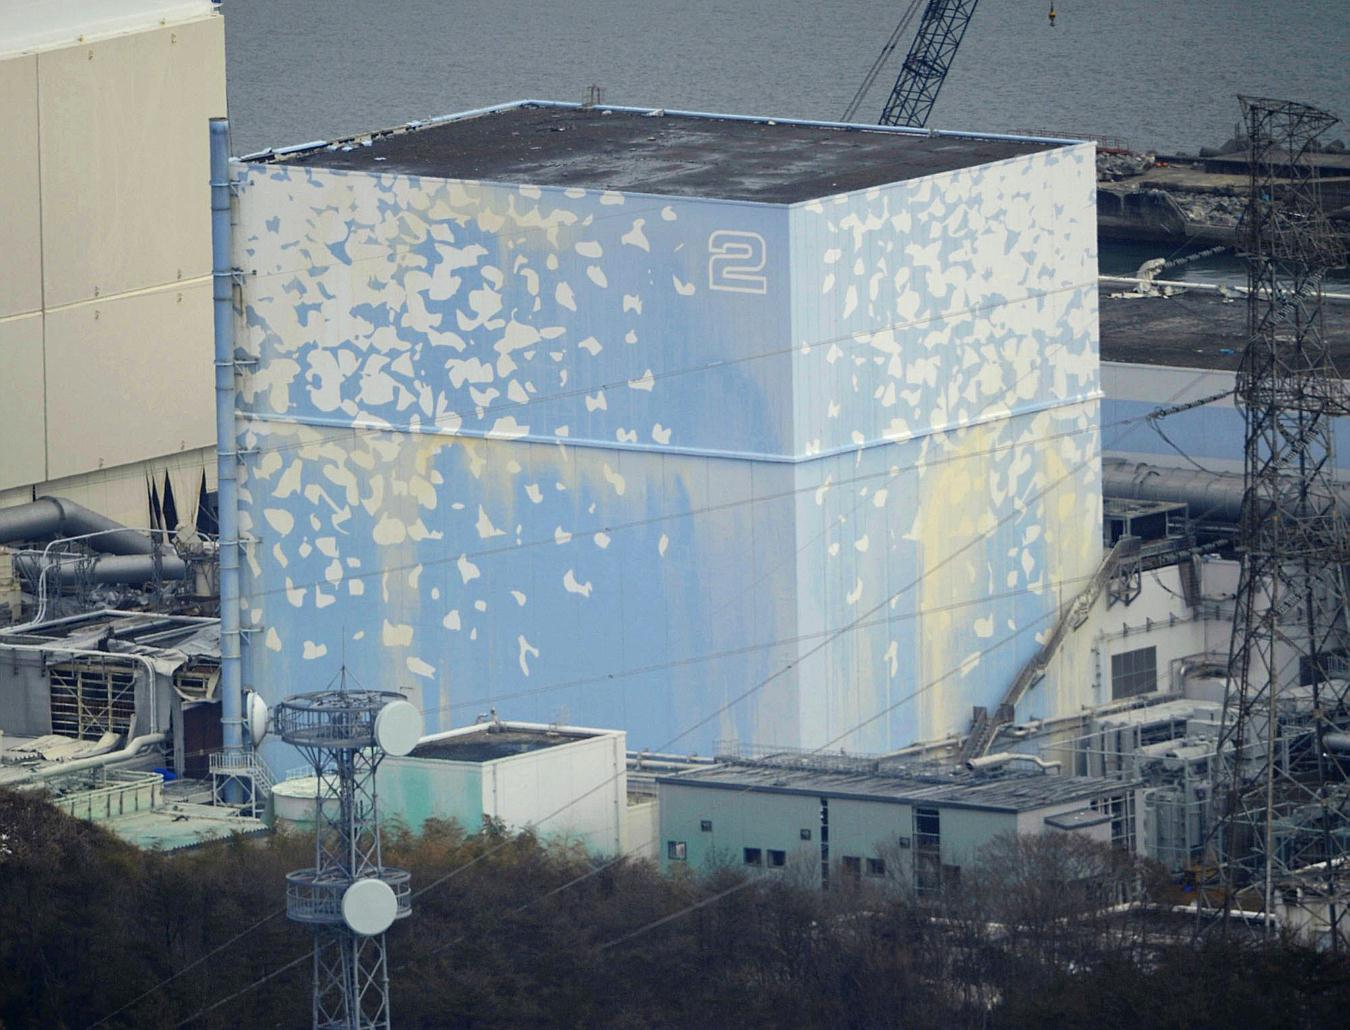 TEPCO confirms hole in Fukushima Daiichi Unit 2 suppression pool